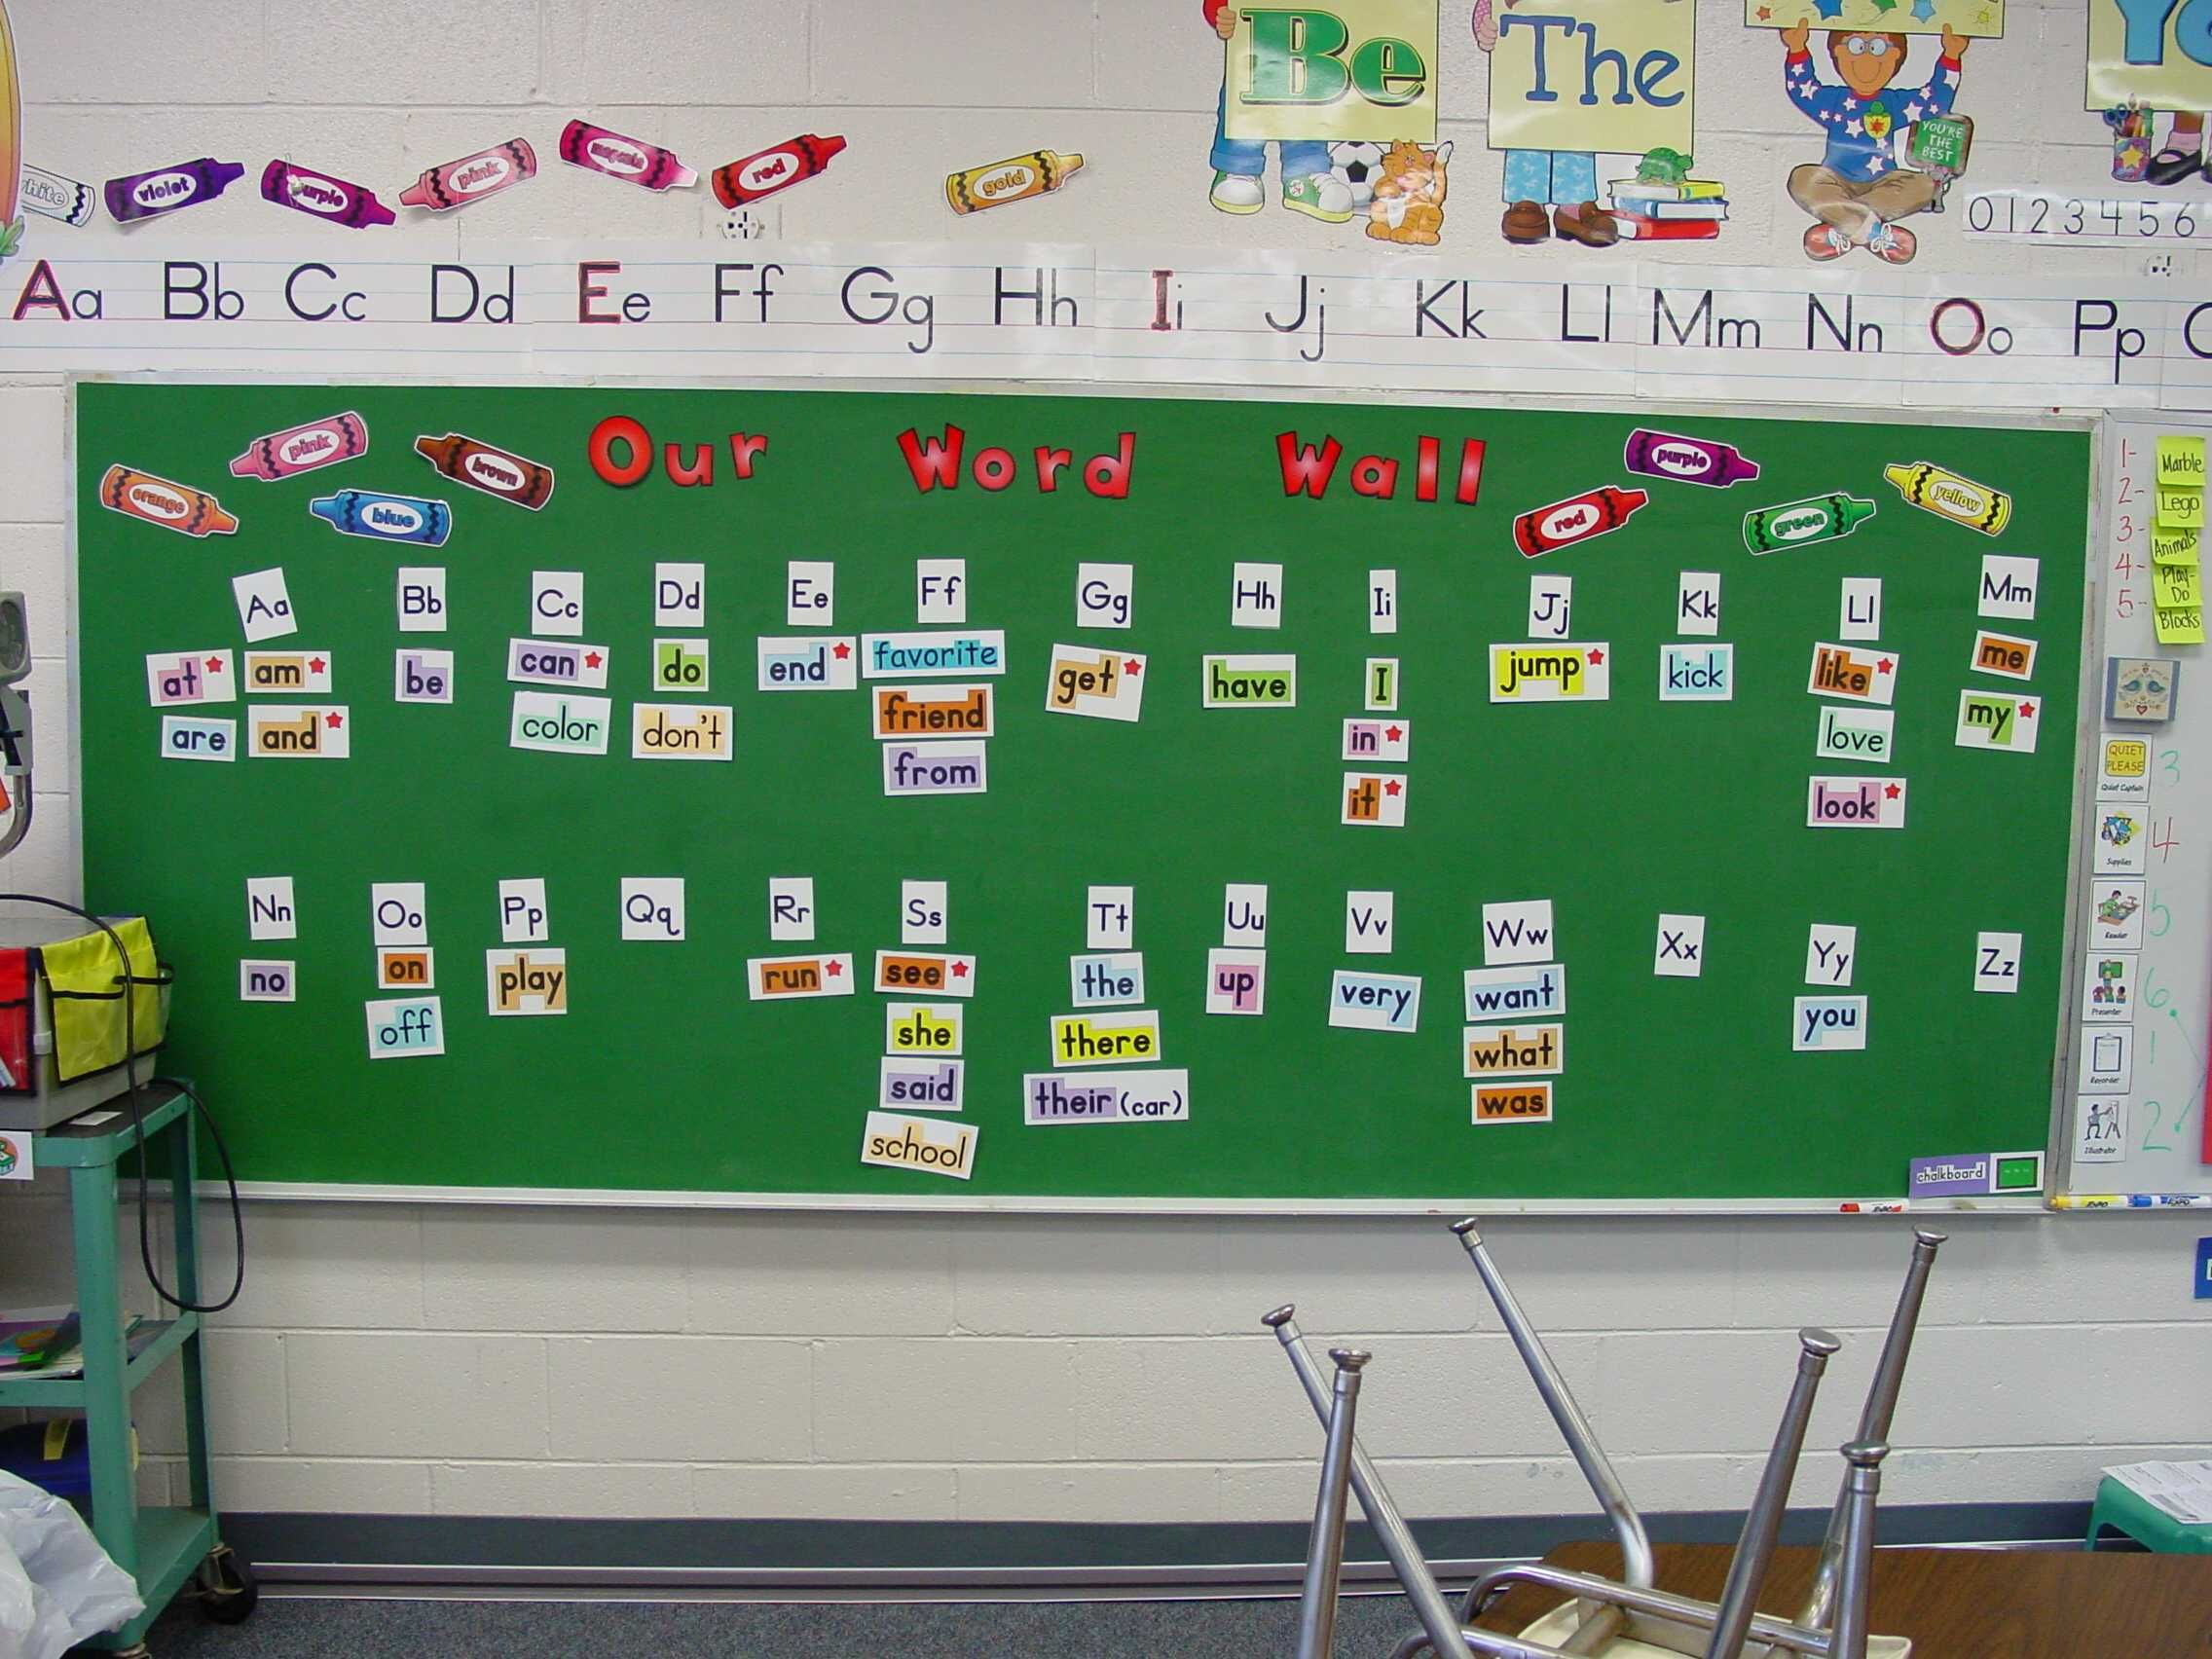 Spelling clipart word wall. This is an example